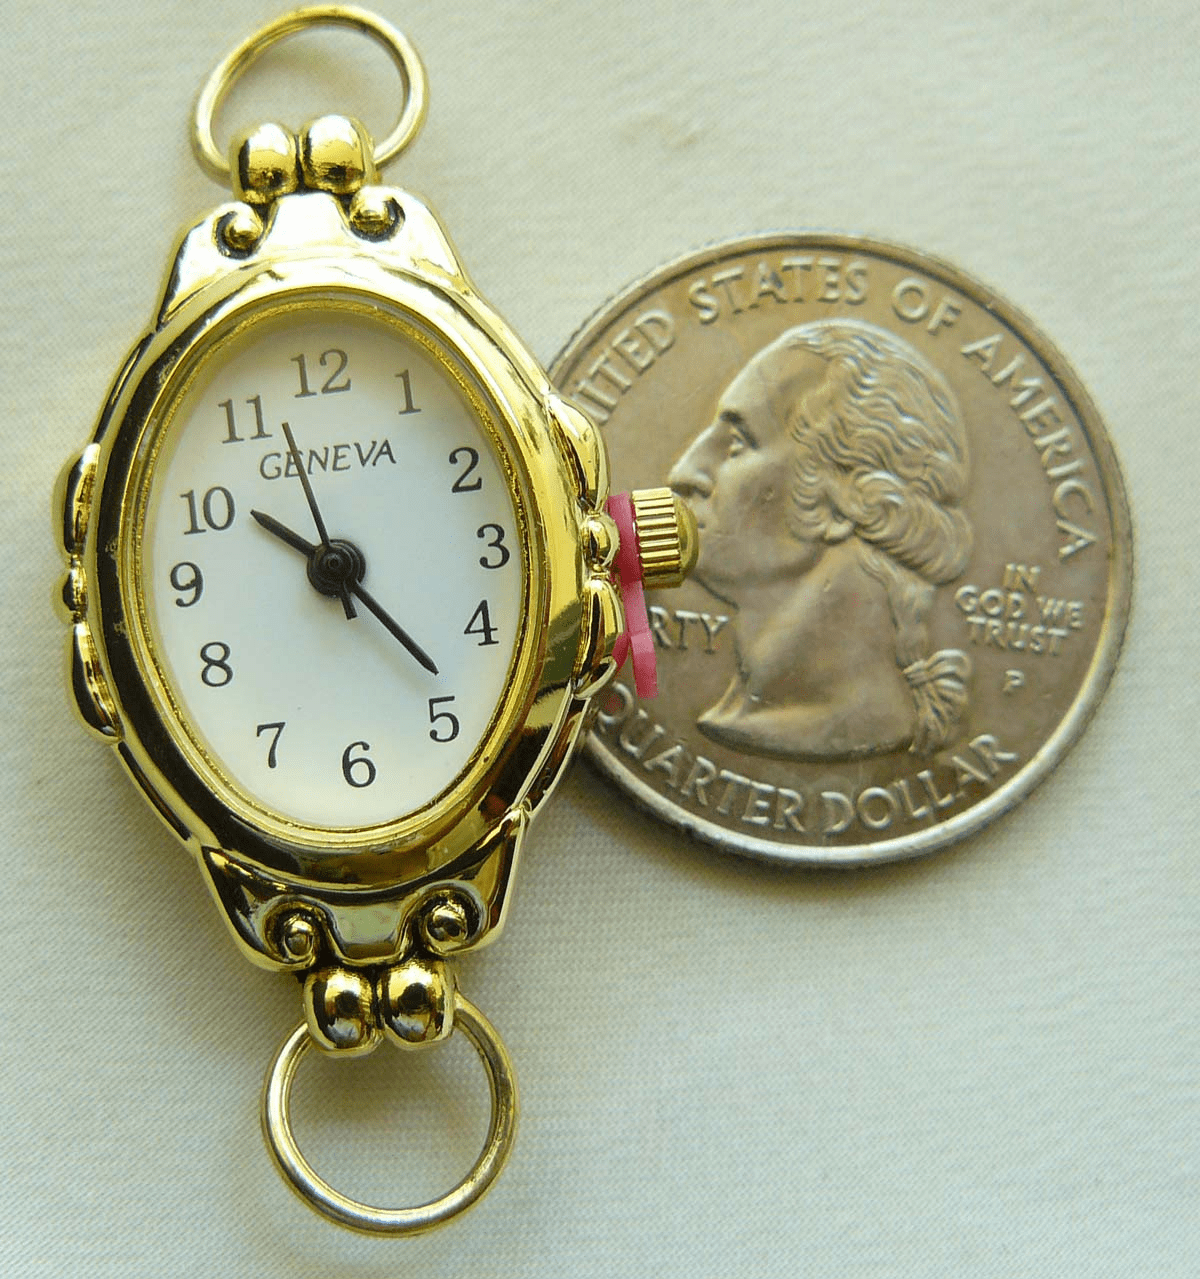 Watch Face with Ornate Fancy Gold Case 20x25mm